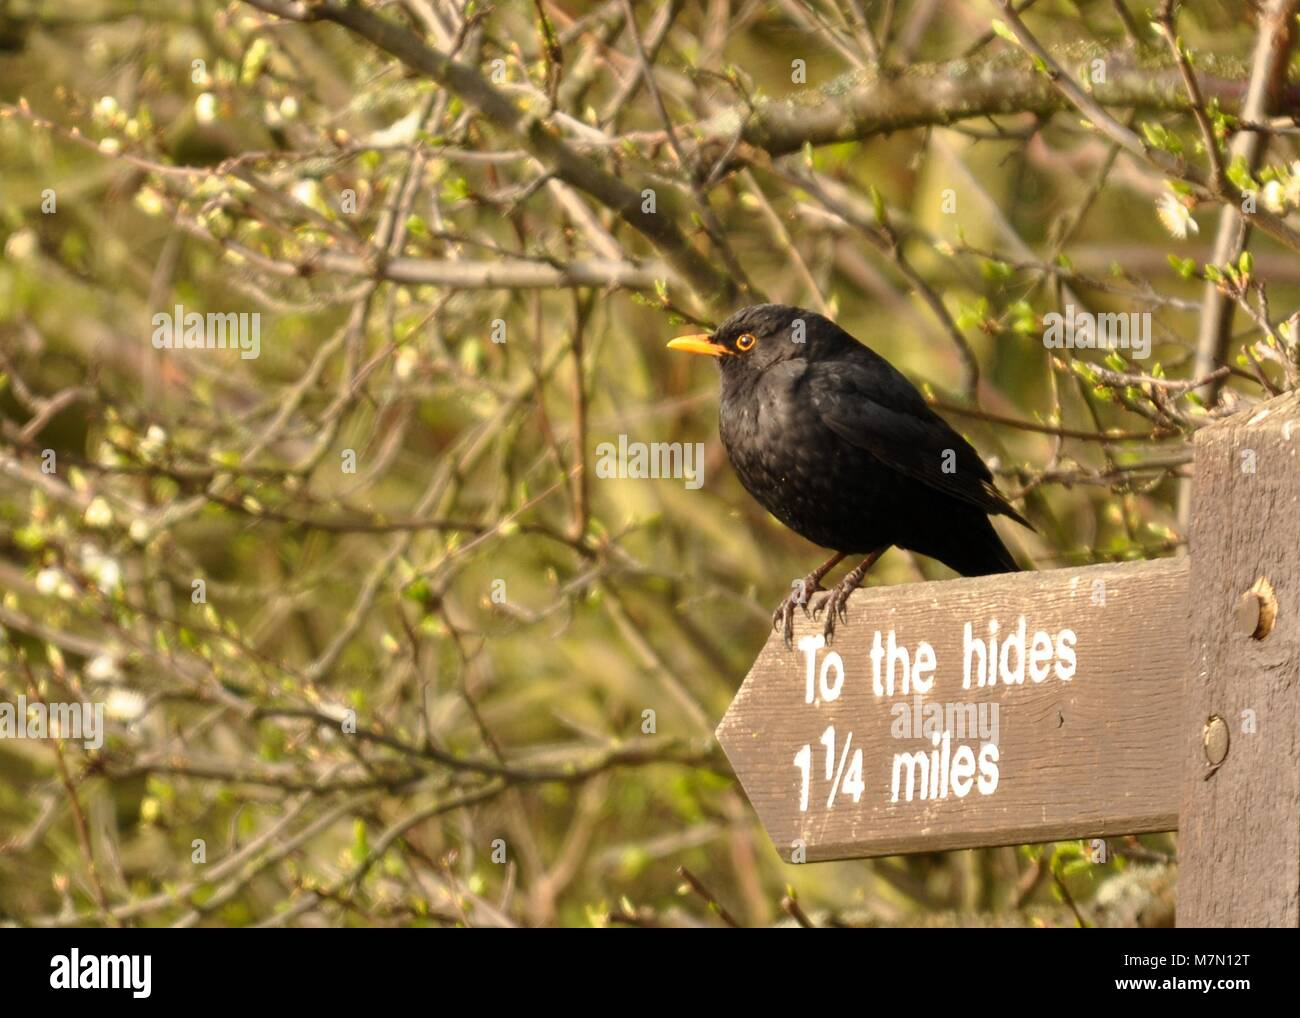 Common Blackbird (Turdus merula) conveniently perched on a to the hides sign. Elmley Nature Reserve, Kent. - Stock Image